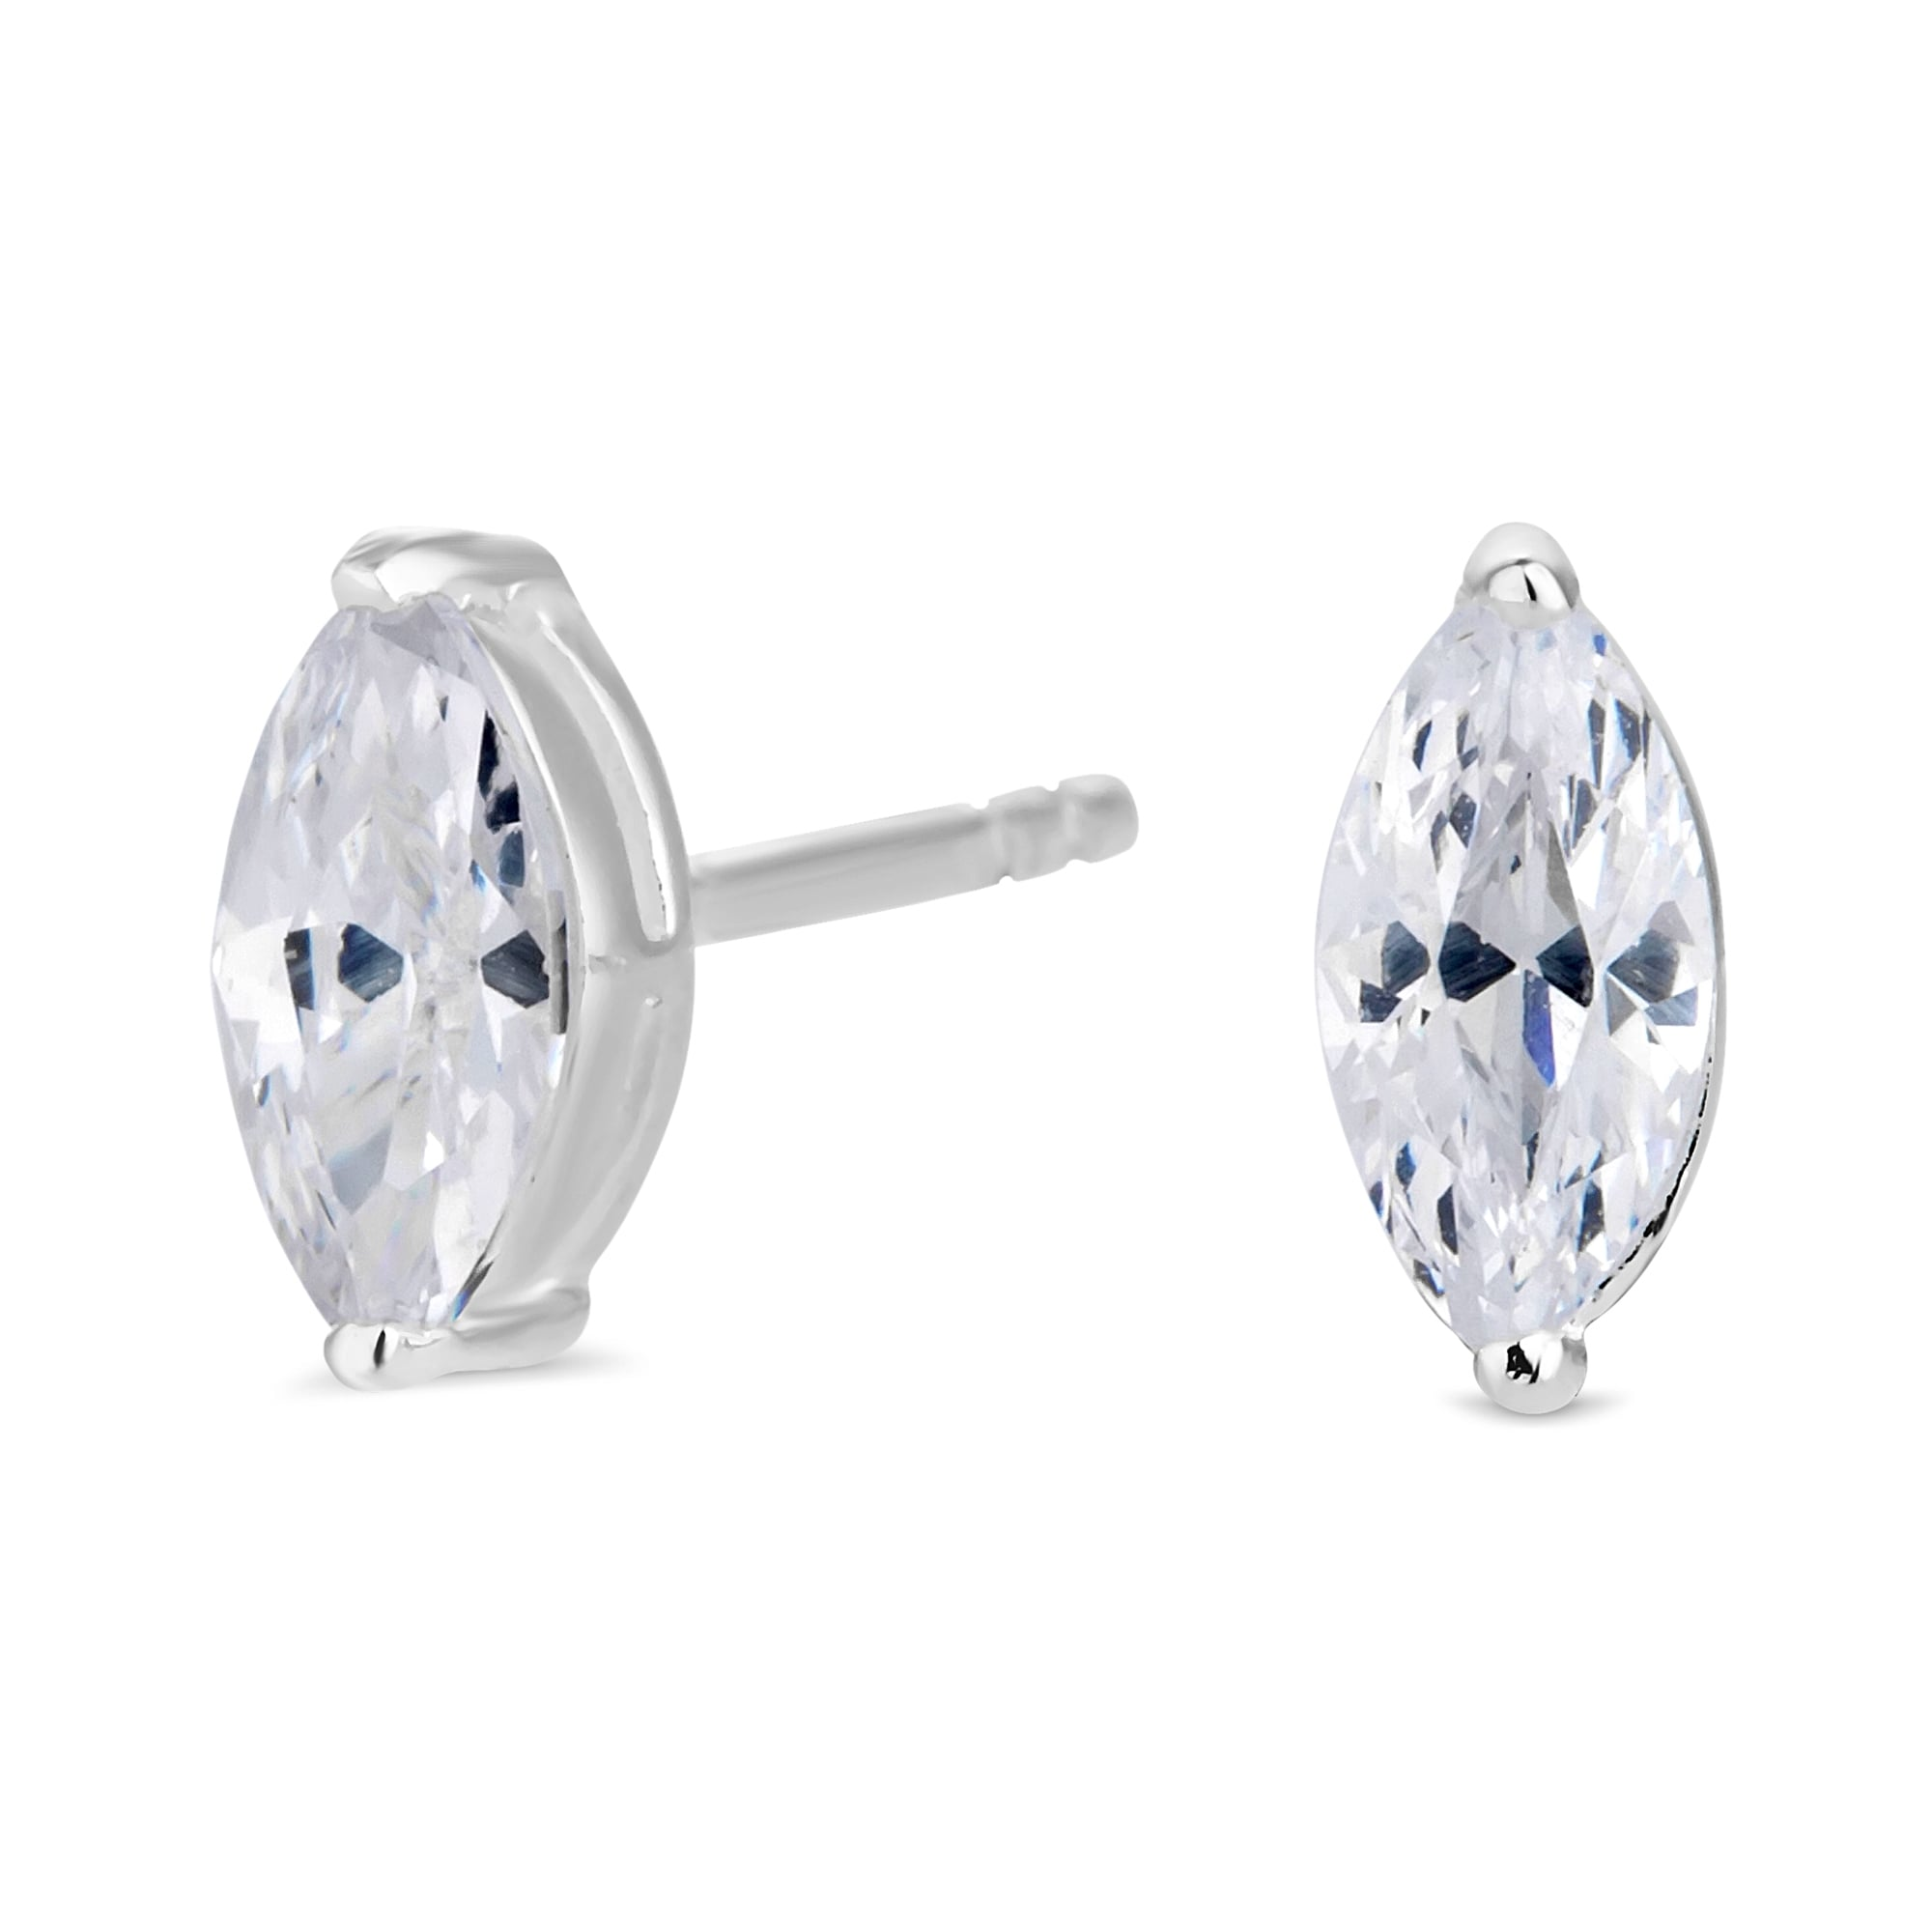 jewelry s ring marquise open engagement stud earrings full product koerber your destination fine